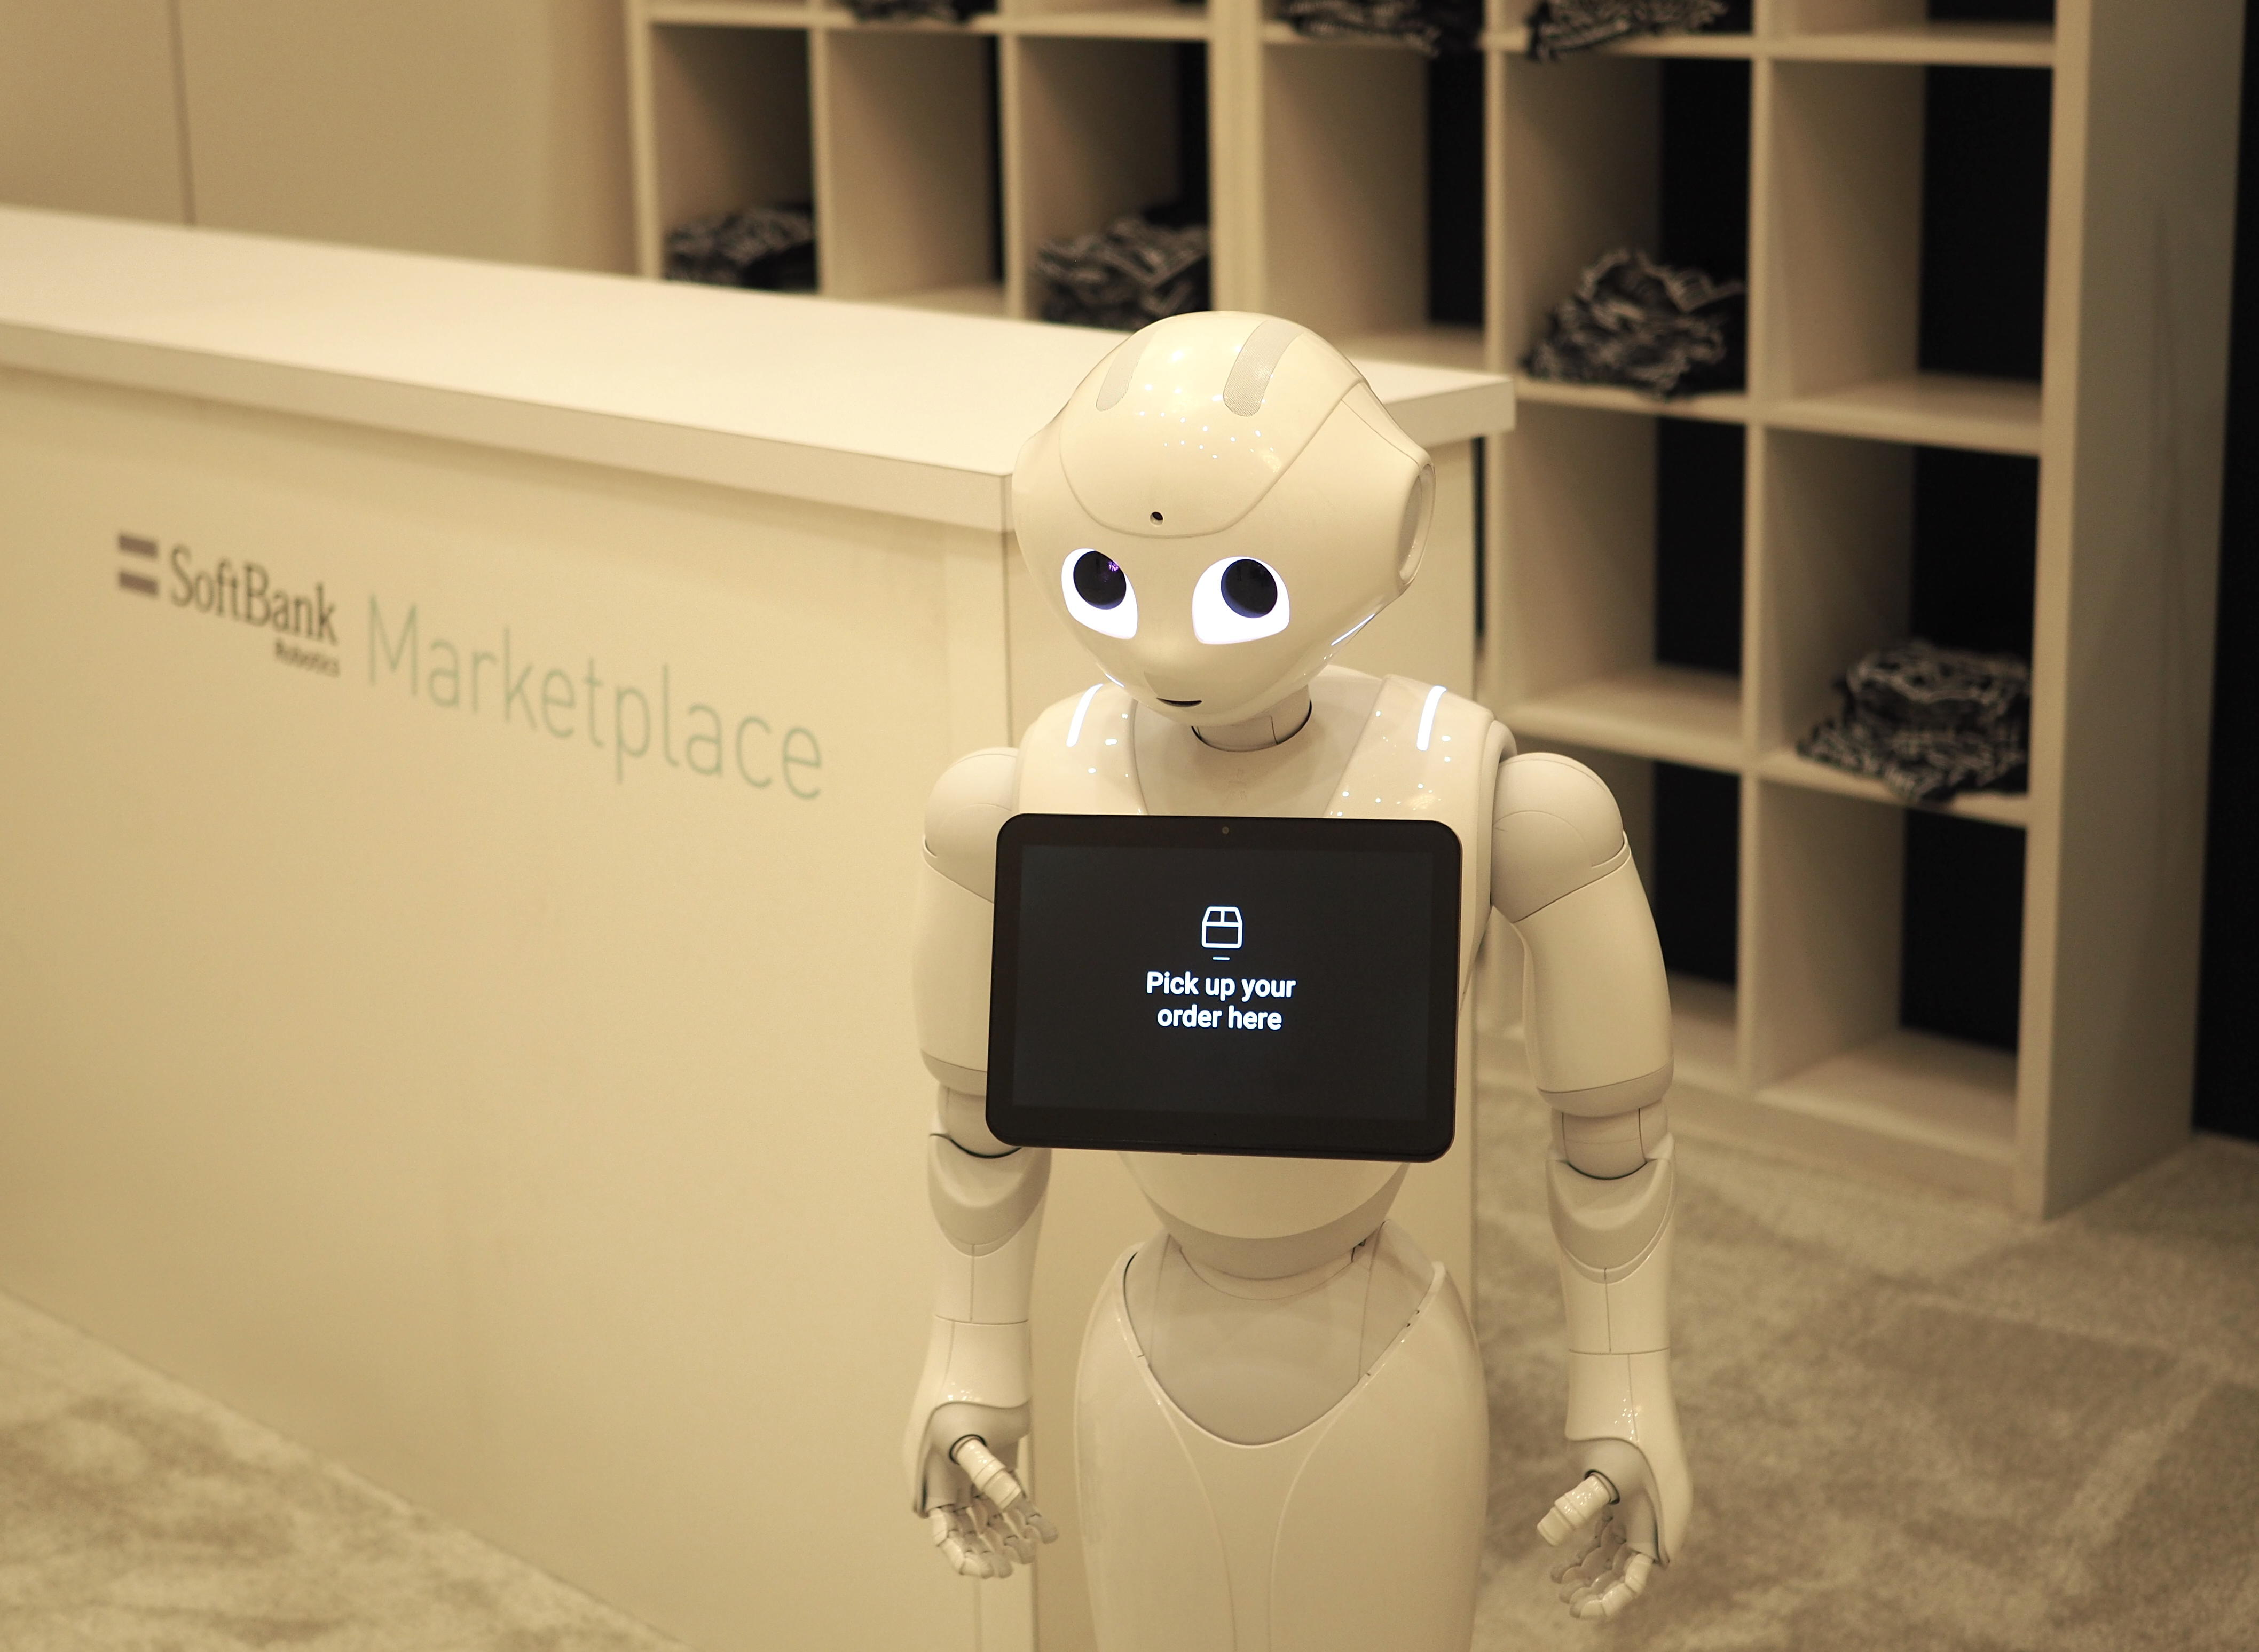 """Pepper the robot at Softbank's CES marketplace. A display on Pepper's chest reads """"Pick up your order here."""""""